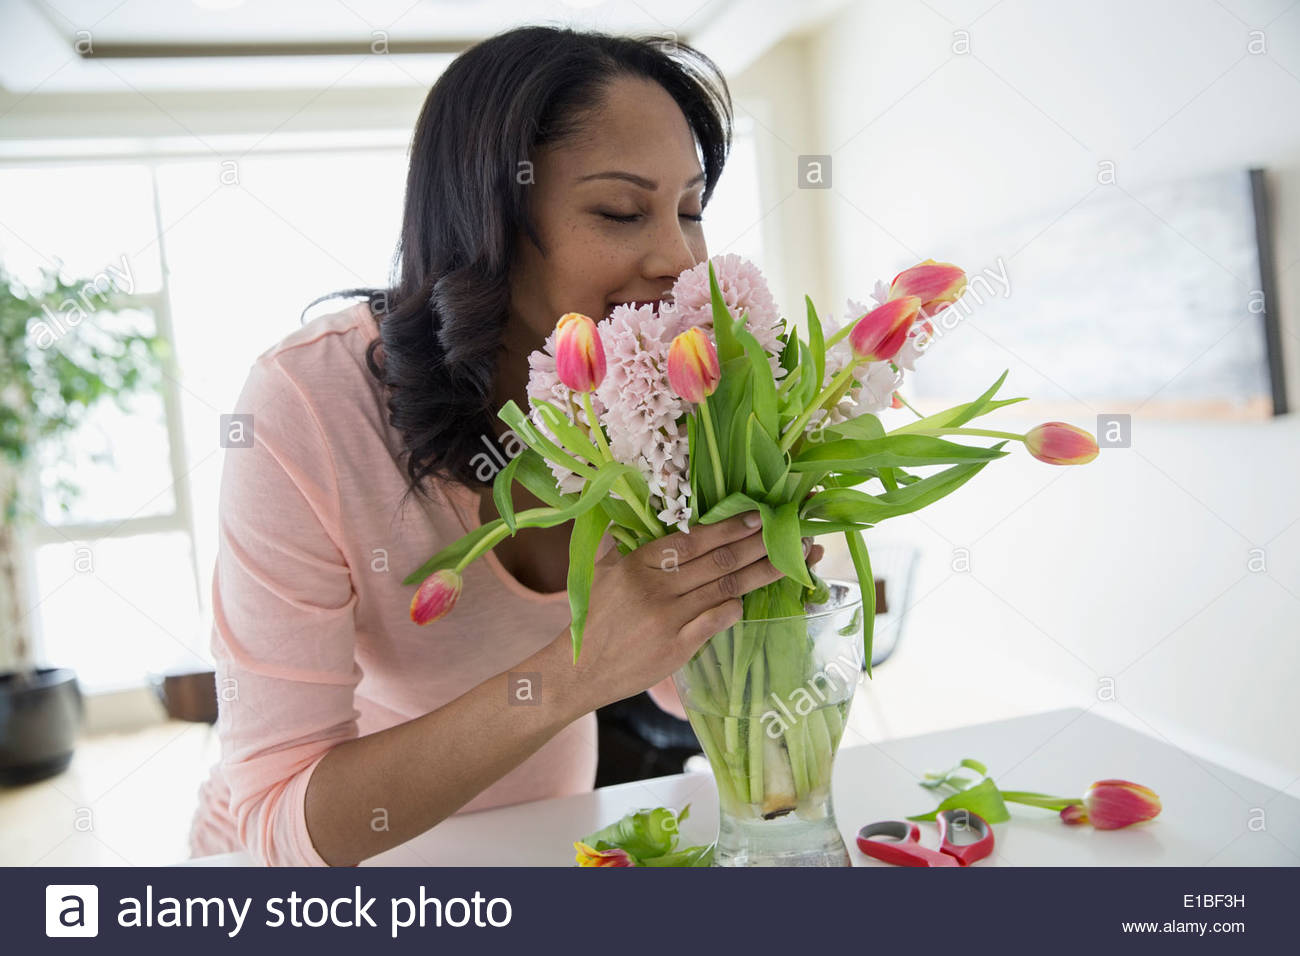 Woman smelling bouquet of flowers - Stock Image